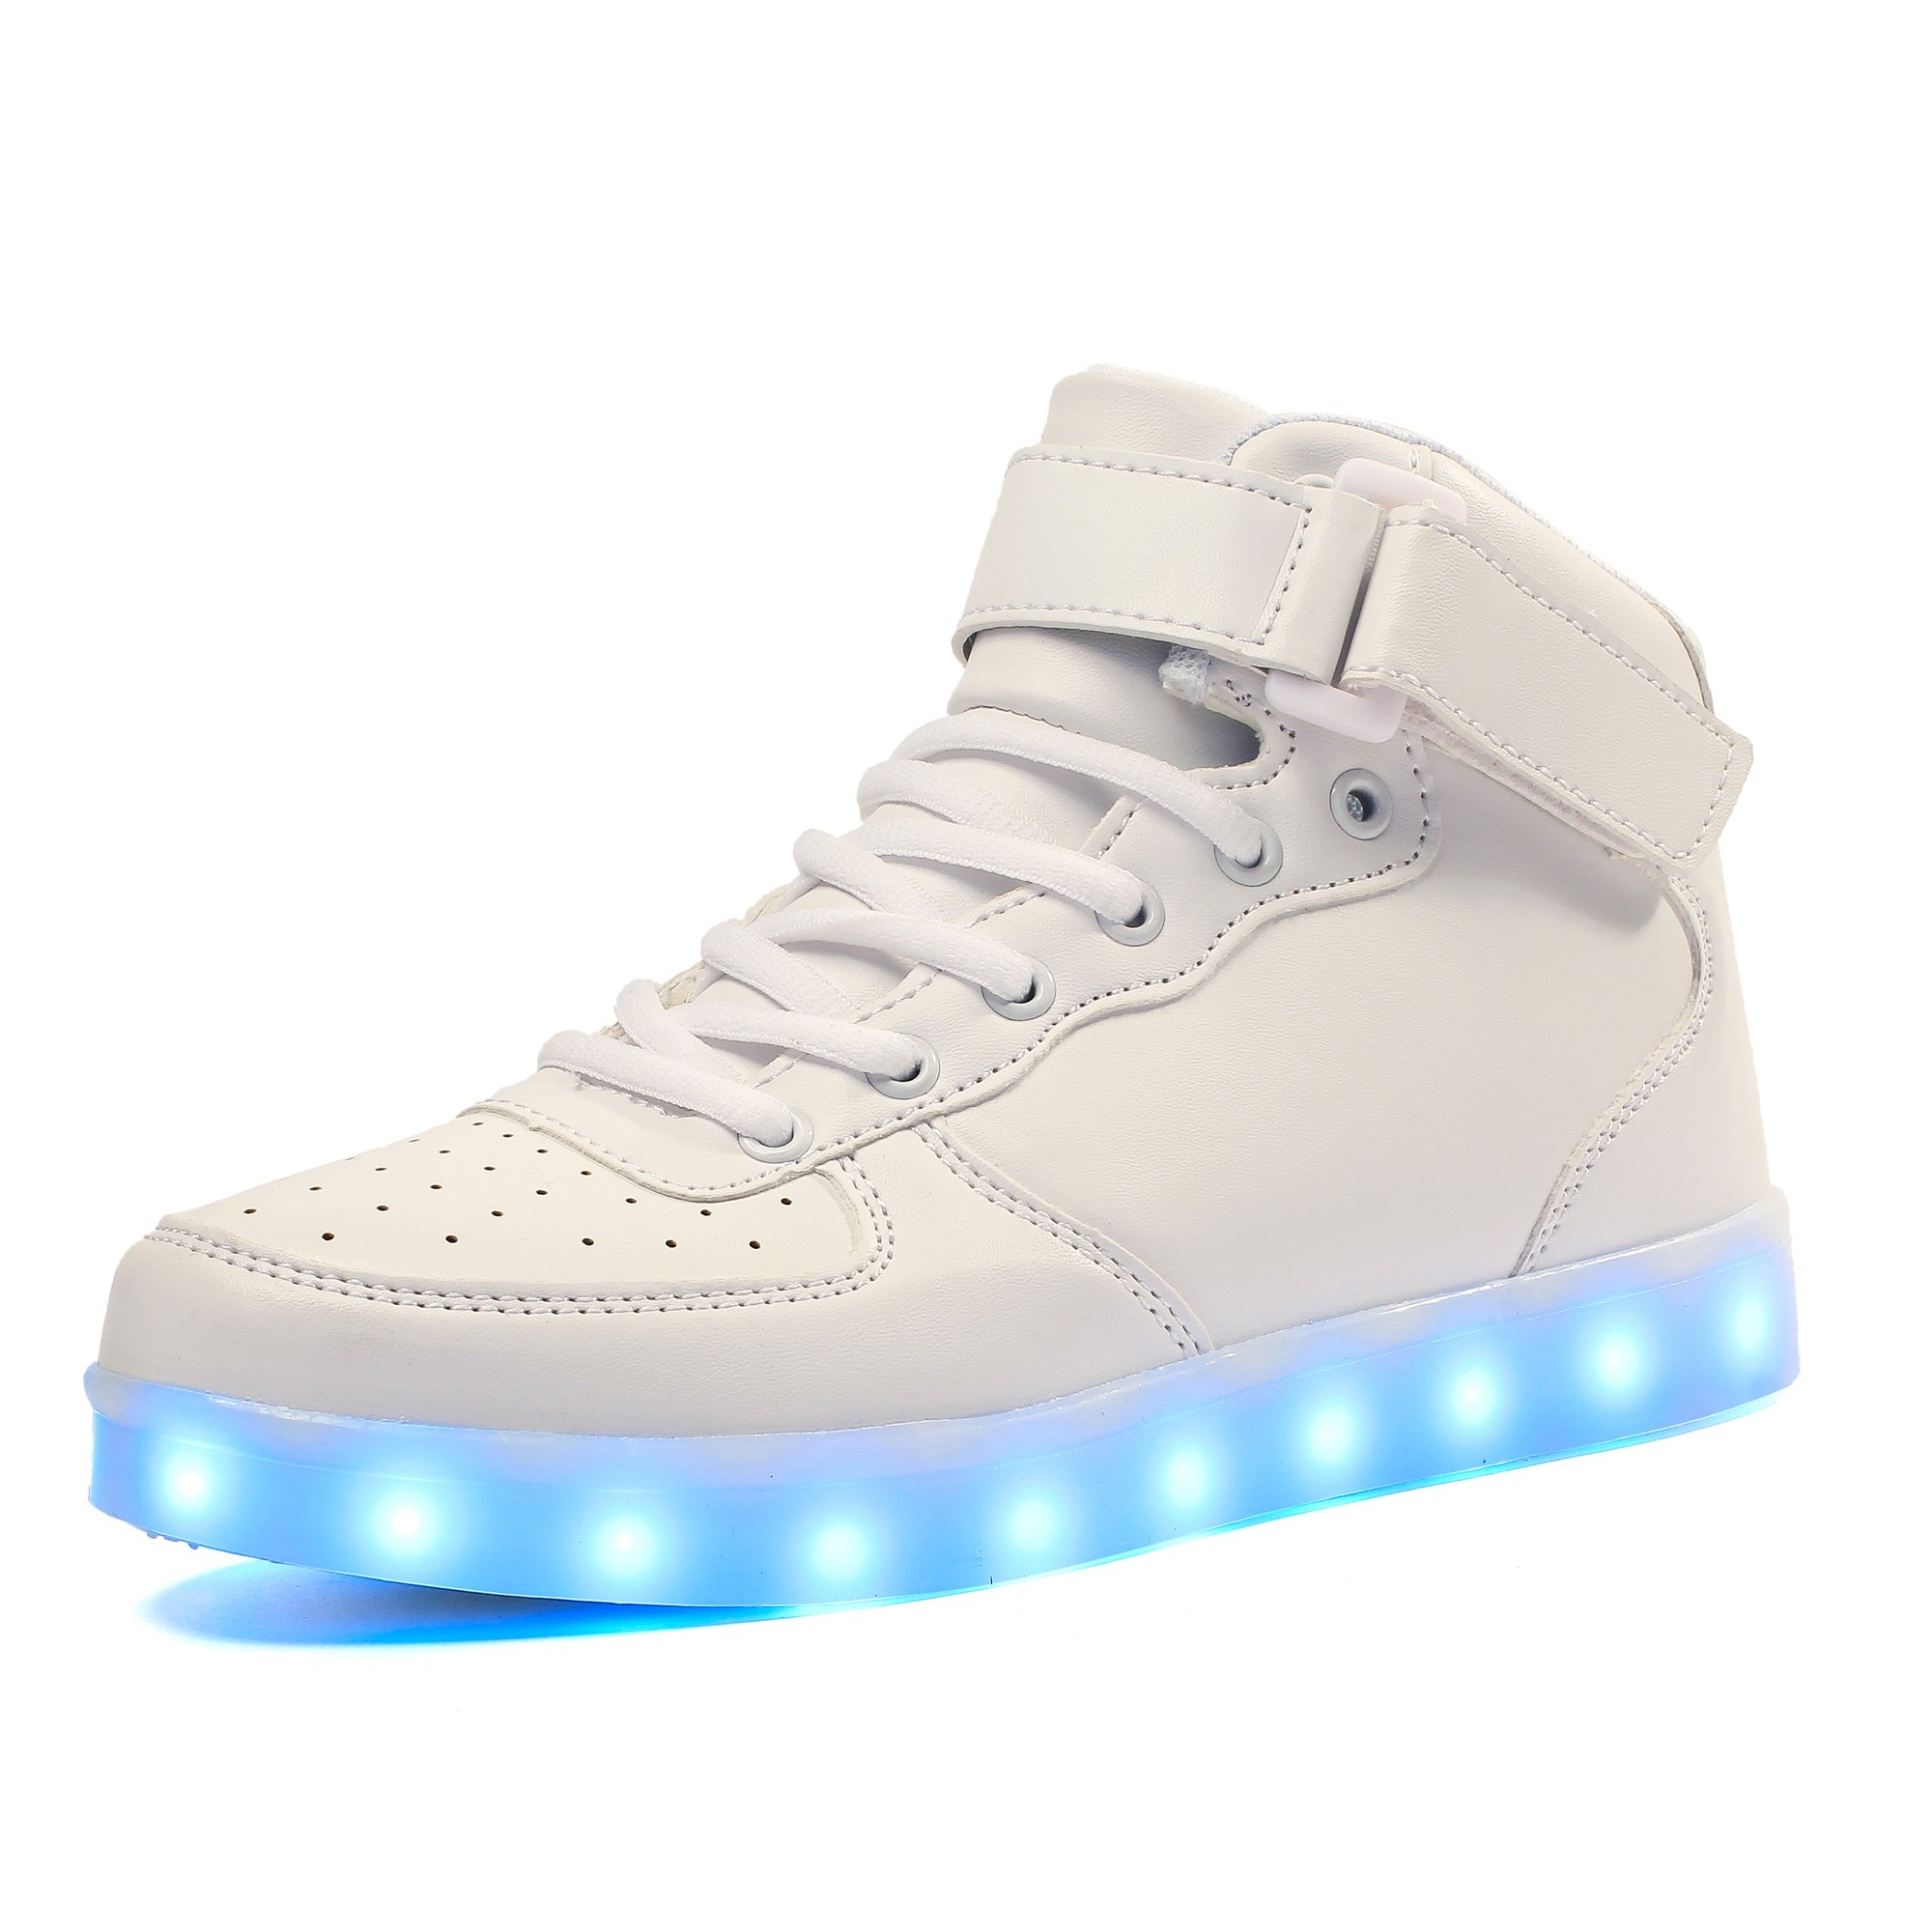 Voovix Kids LED Light Up Shoes USB Rechargeable Flashing High-top Sneakers with Remote Control for Boys and Girls(White.US3.5/CN36)